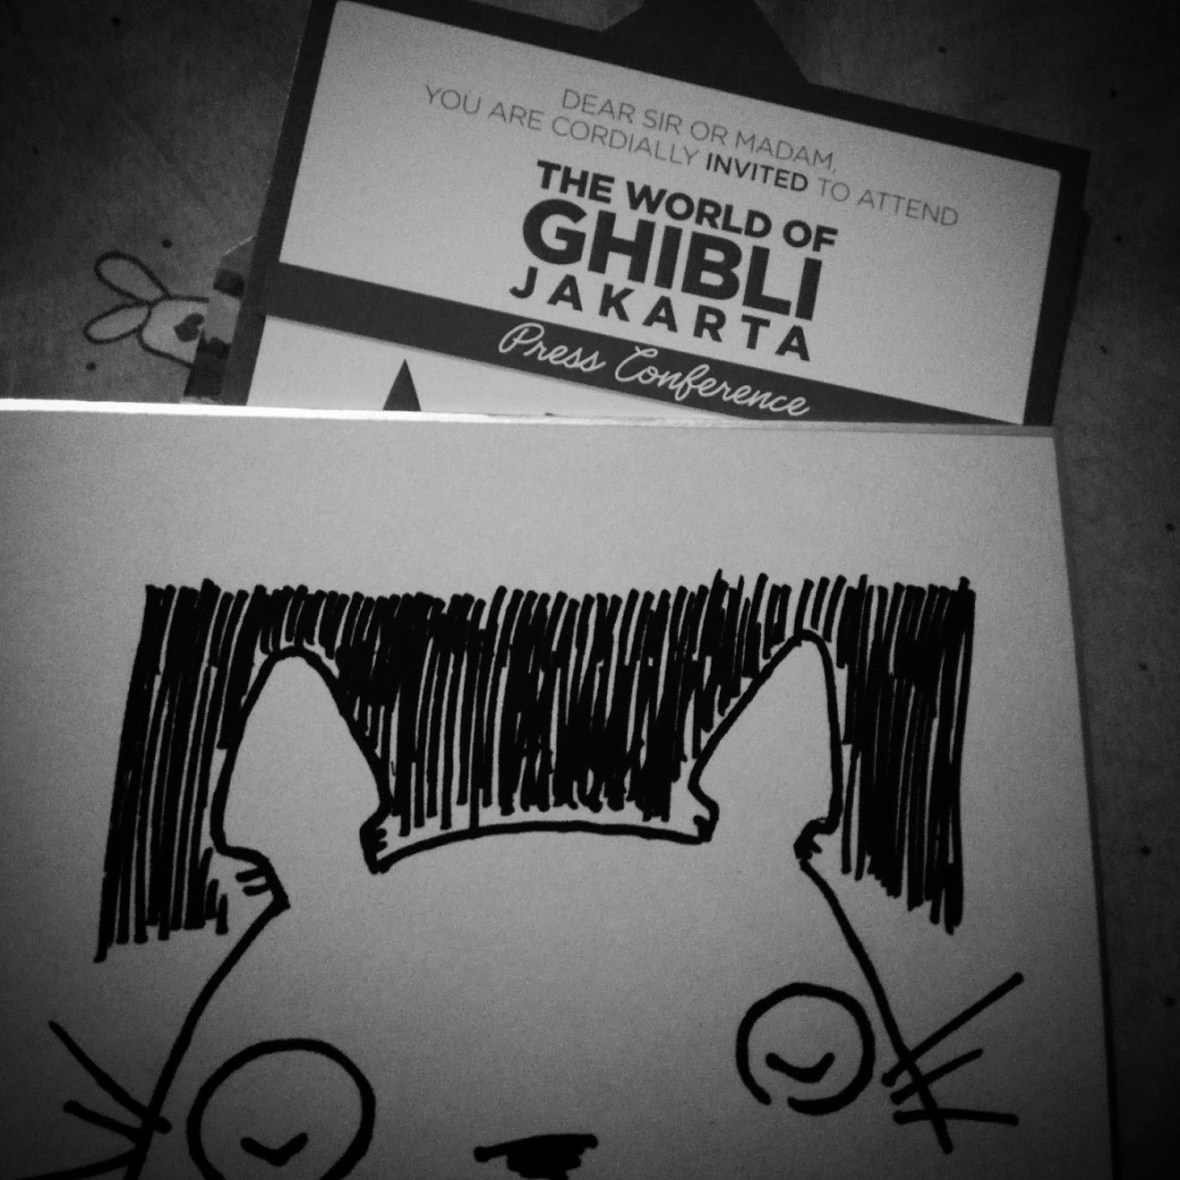 The World of Ghibli Jakarta